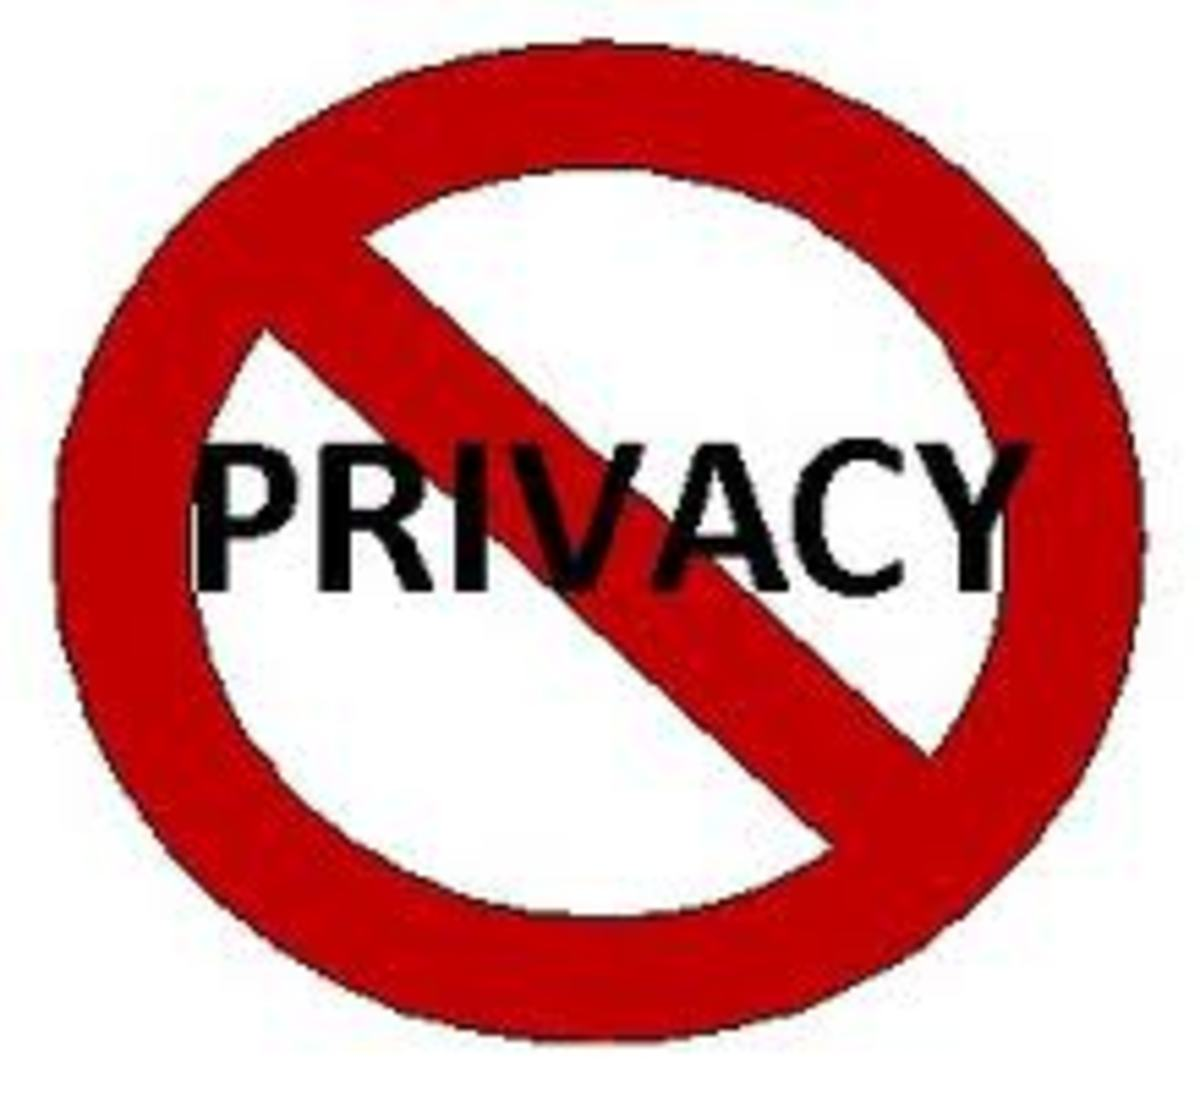 Privacy? Alone time? A total foreign concept in large&very large families.Children in such families live in congested and crowded environments.The ONLY time they have privacy in the sense of the word is when THEY are AWAY from home.........